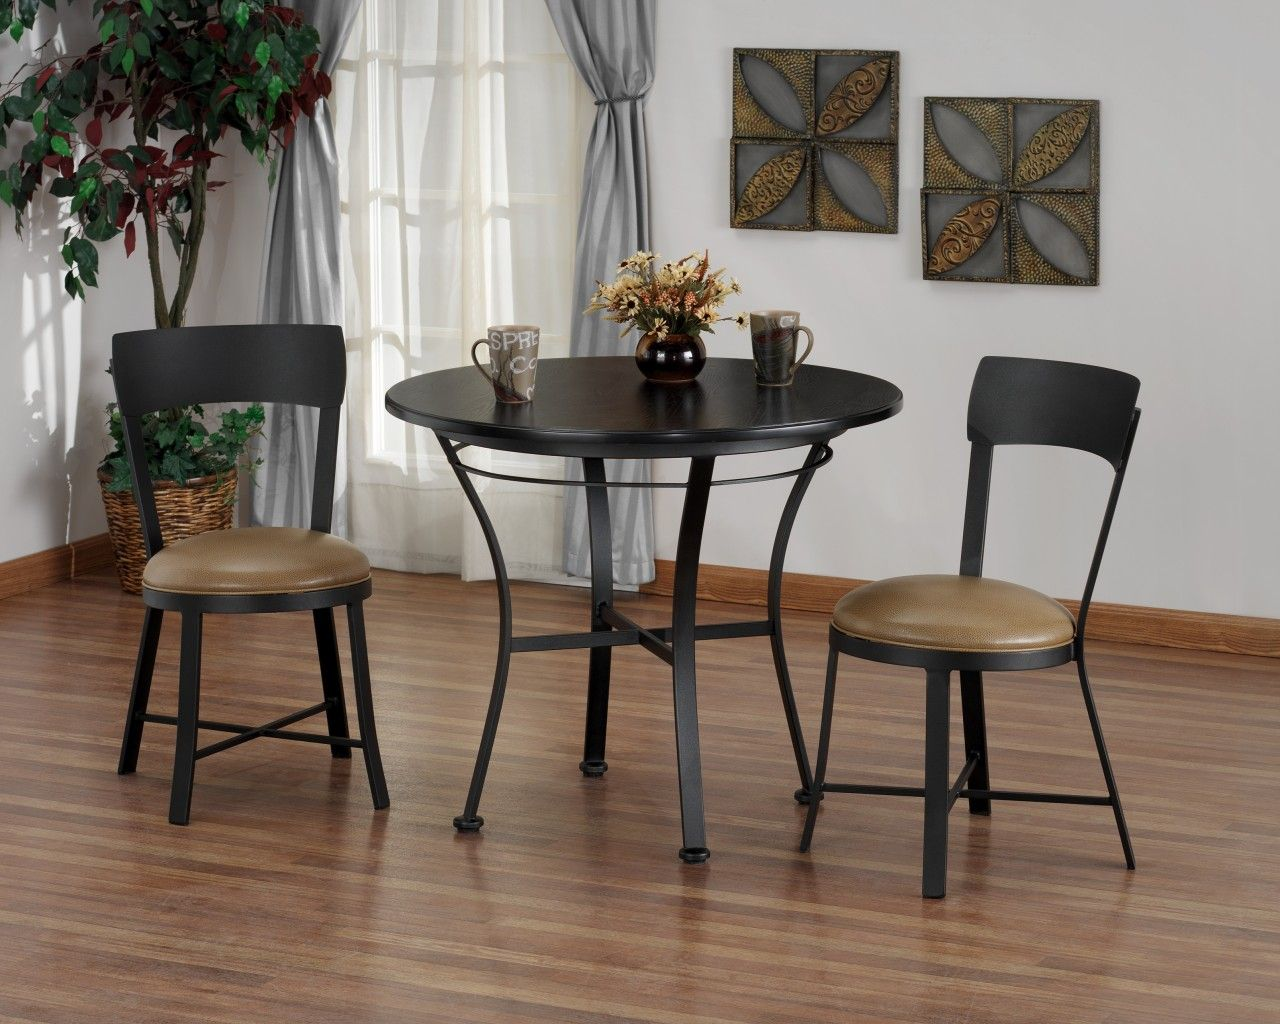 indoor bistro sets for kitchen indoor bistro table and chairs in uk TEIVMTT